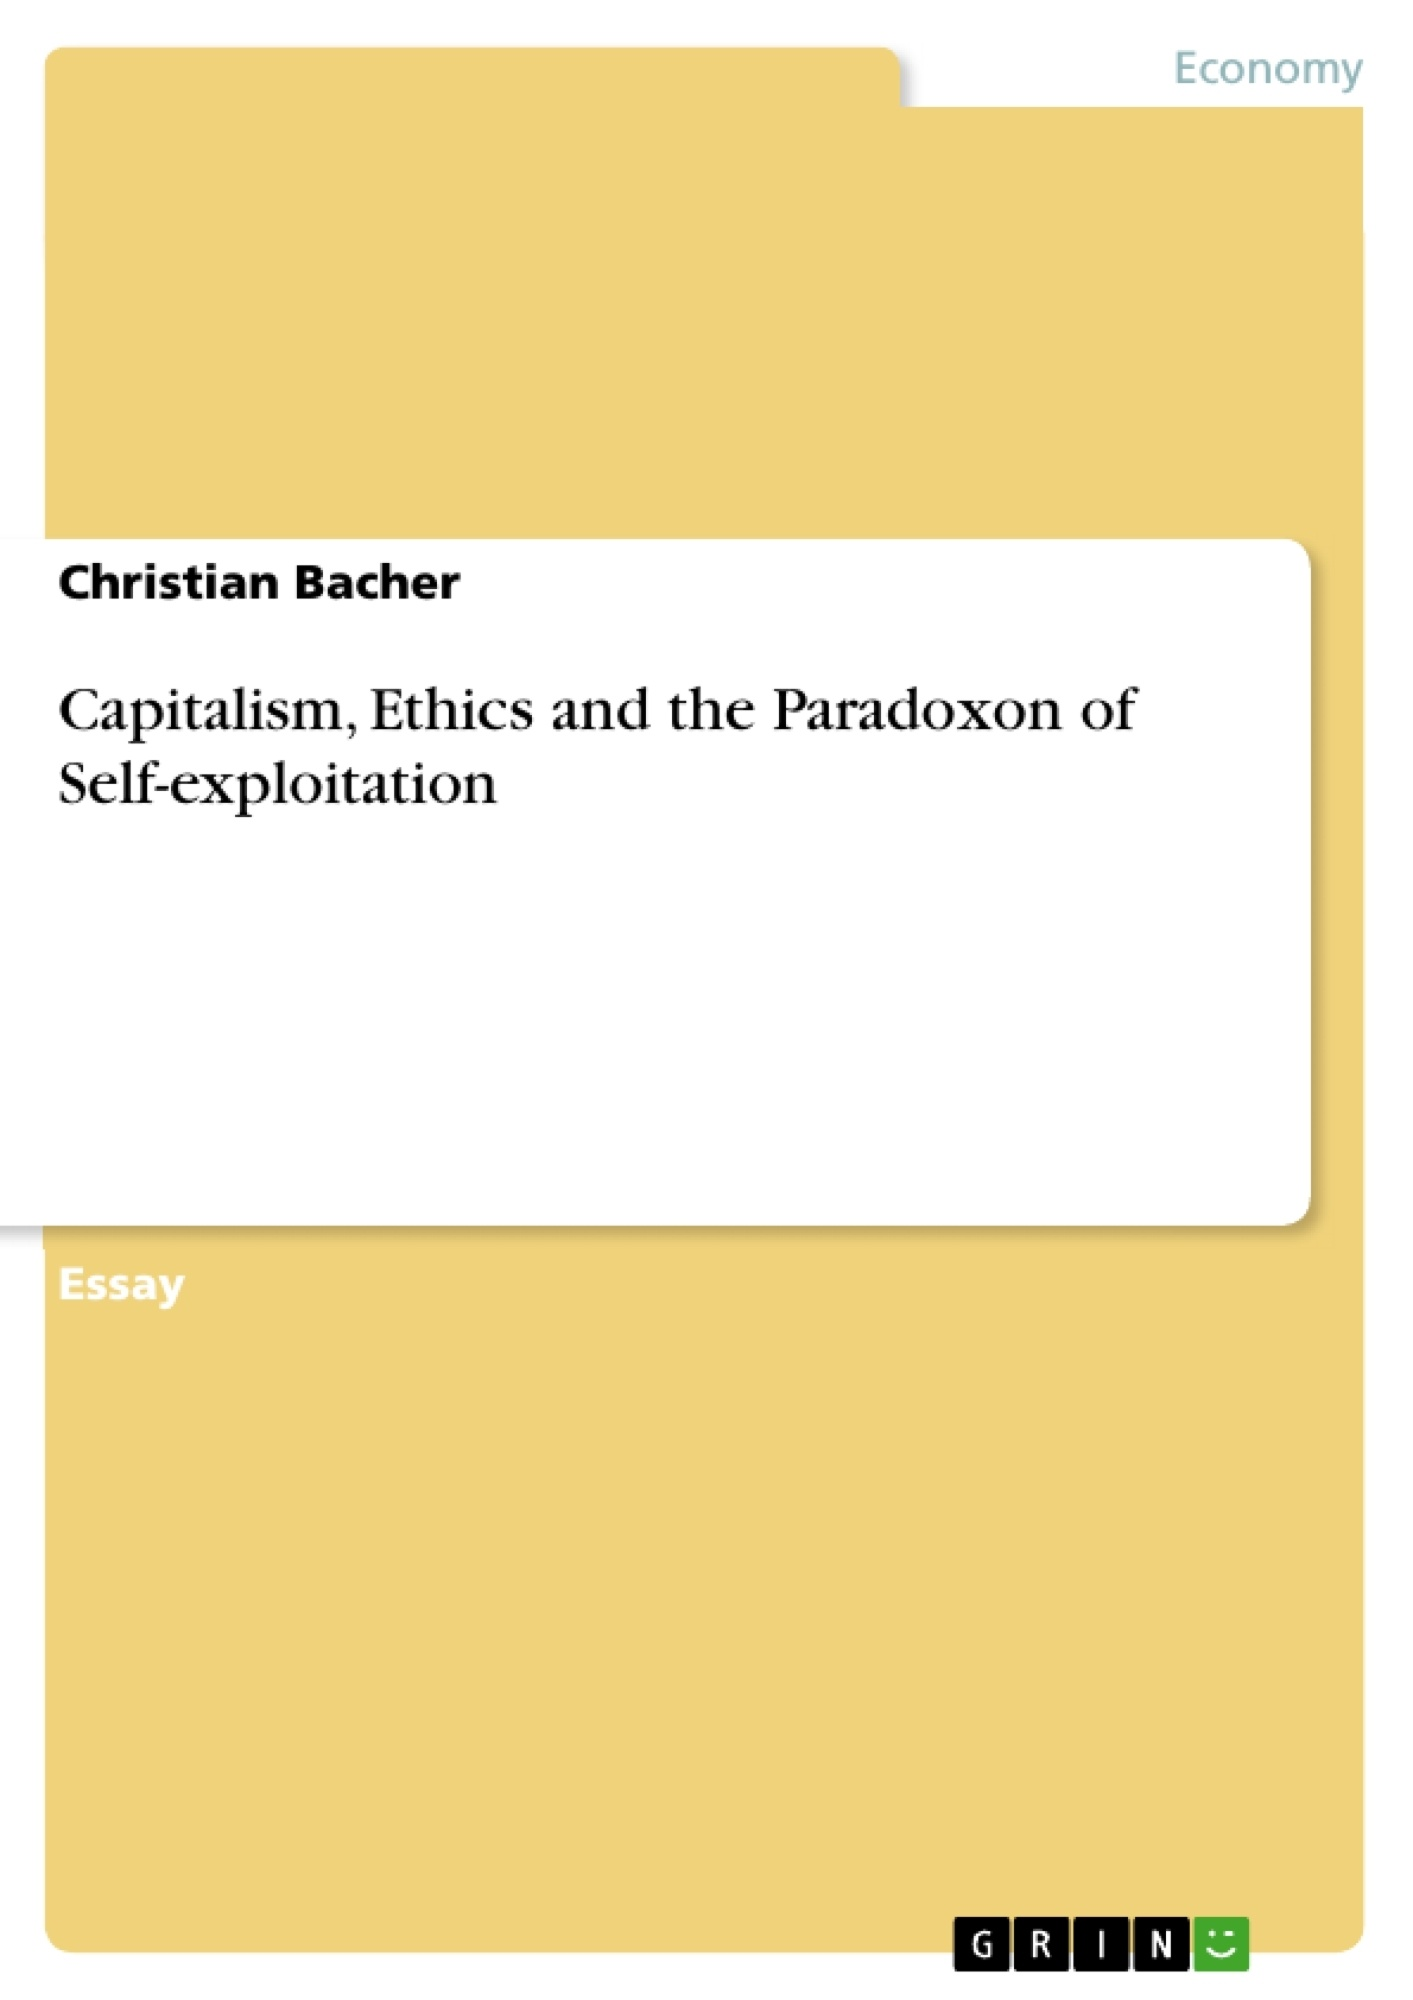 Title: Capitalism, Ethics and the Paradoxon of Self-exploitation